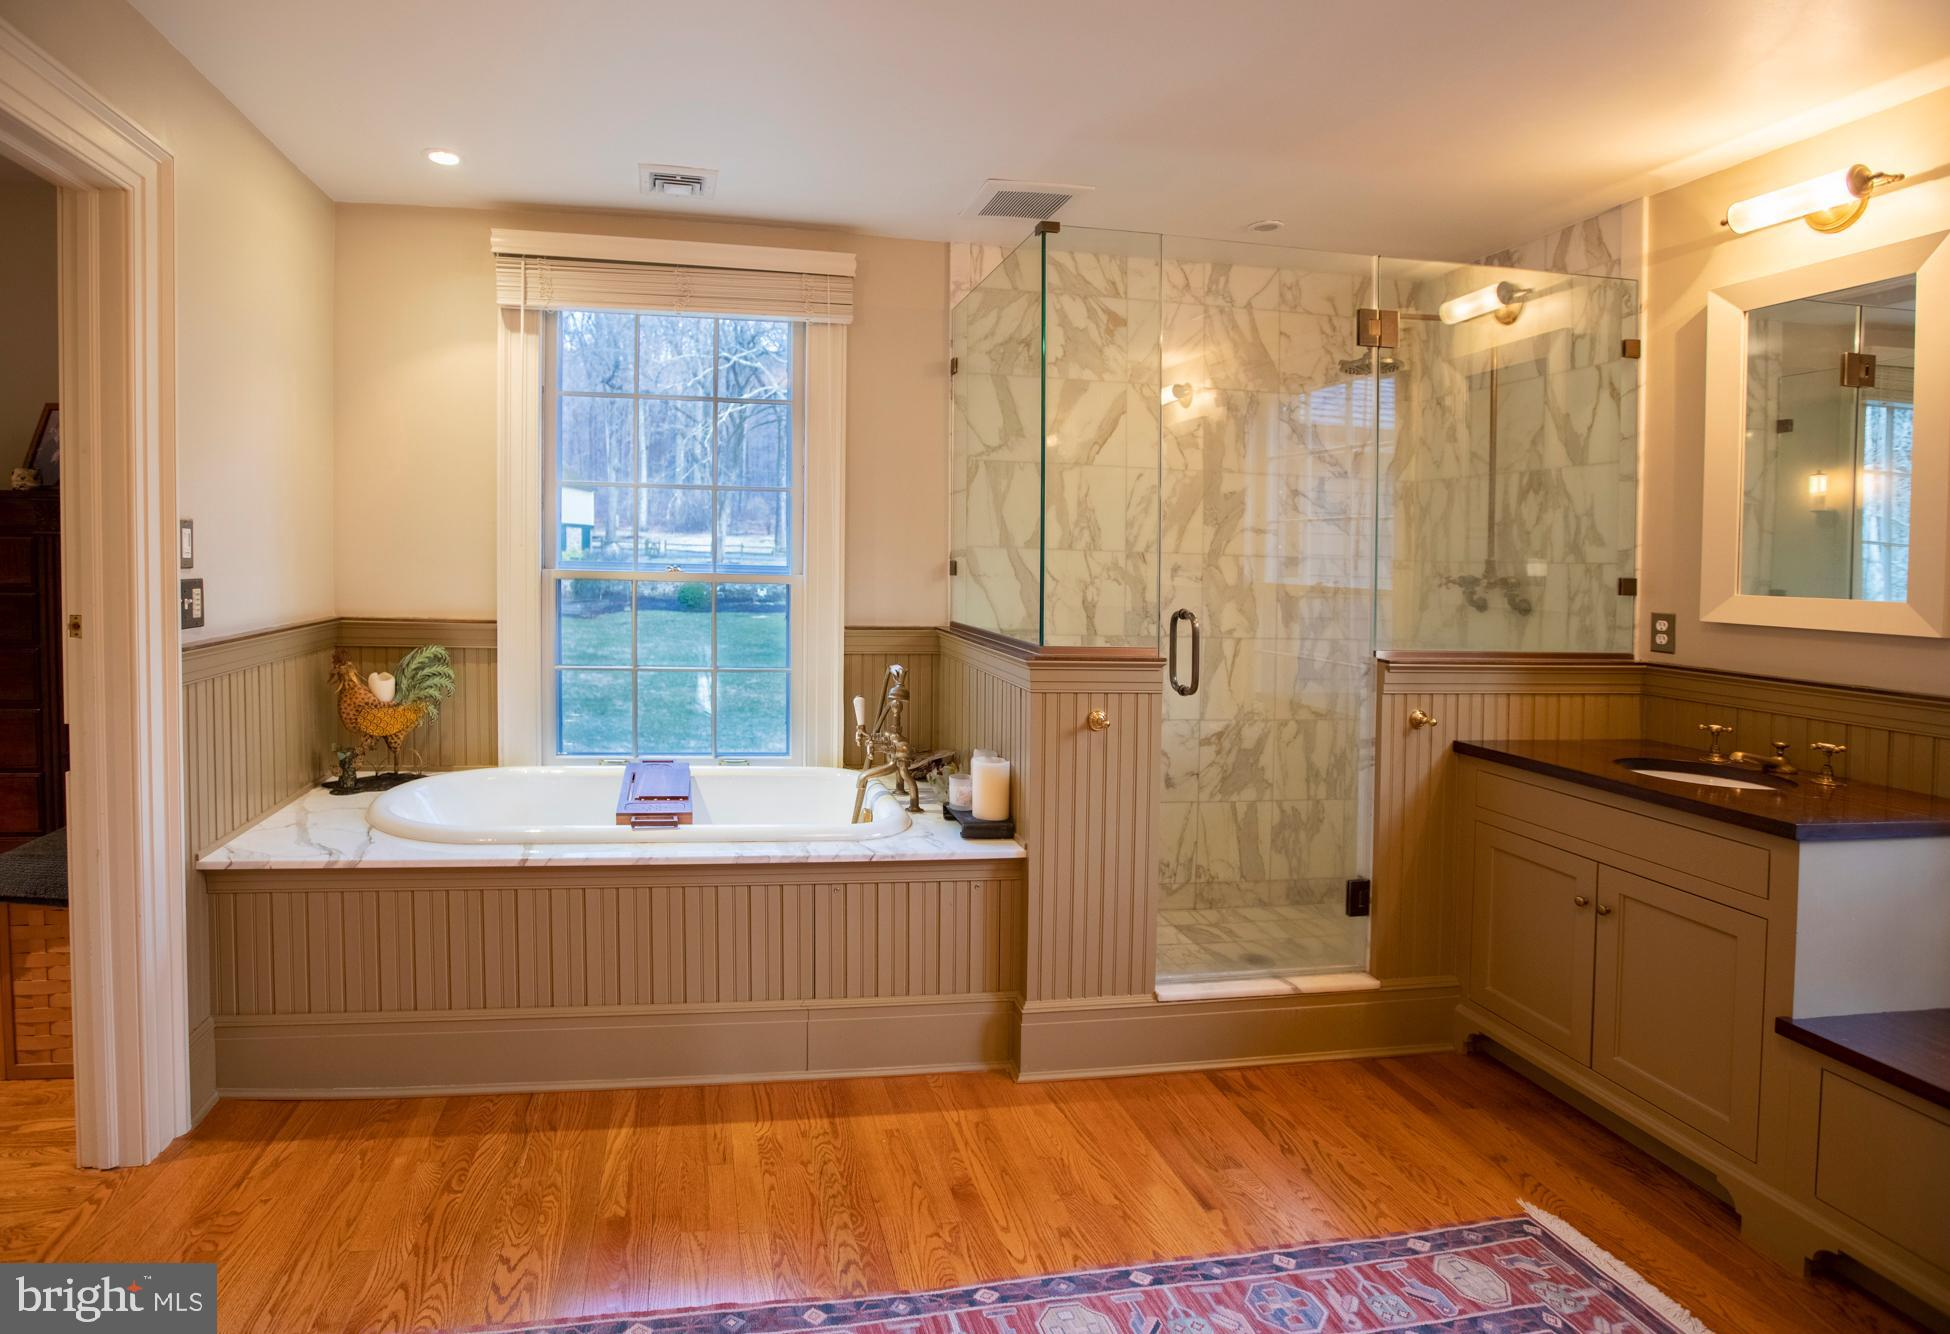 The  en suite master bath room.